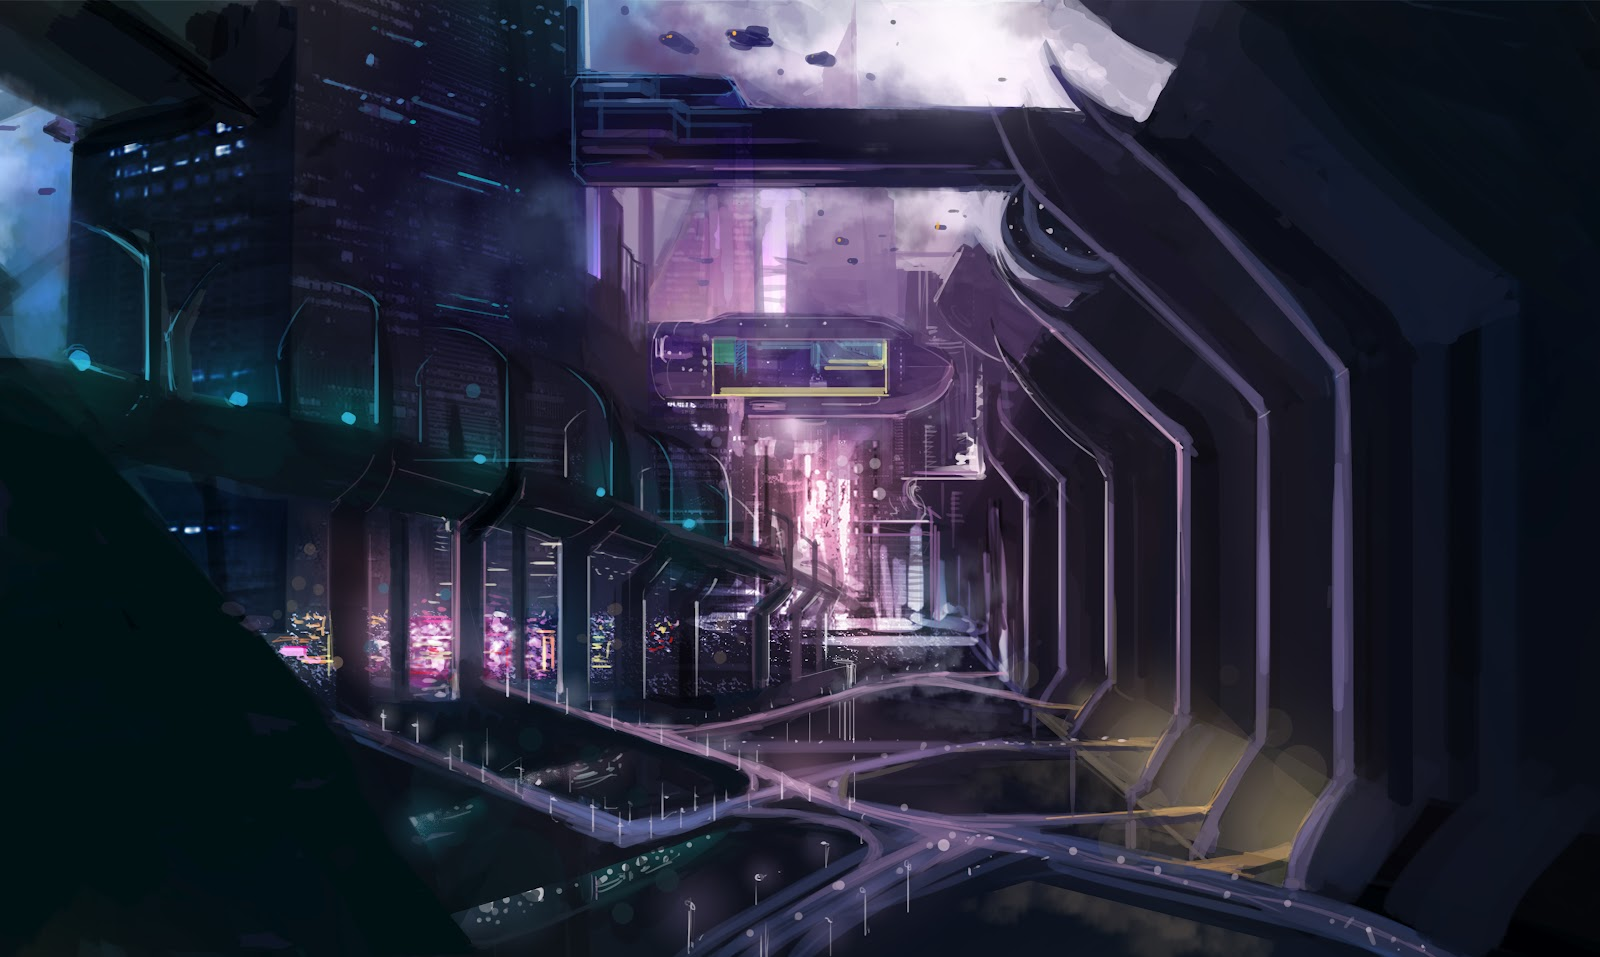 Pin by Justin IRRAXZERO on futuristic environment | Pinterest